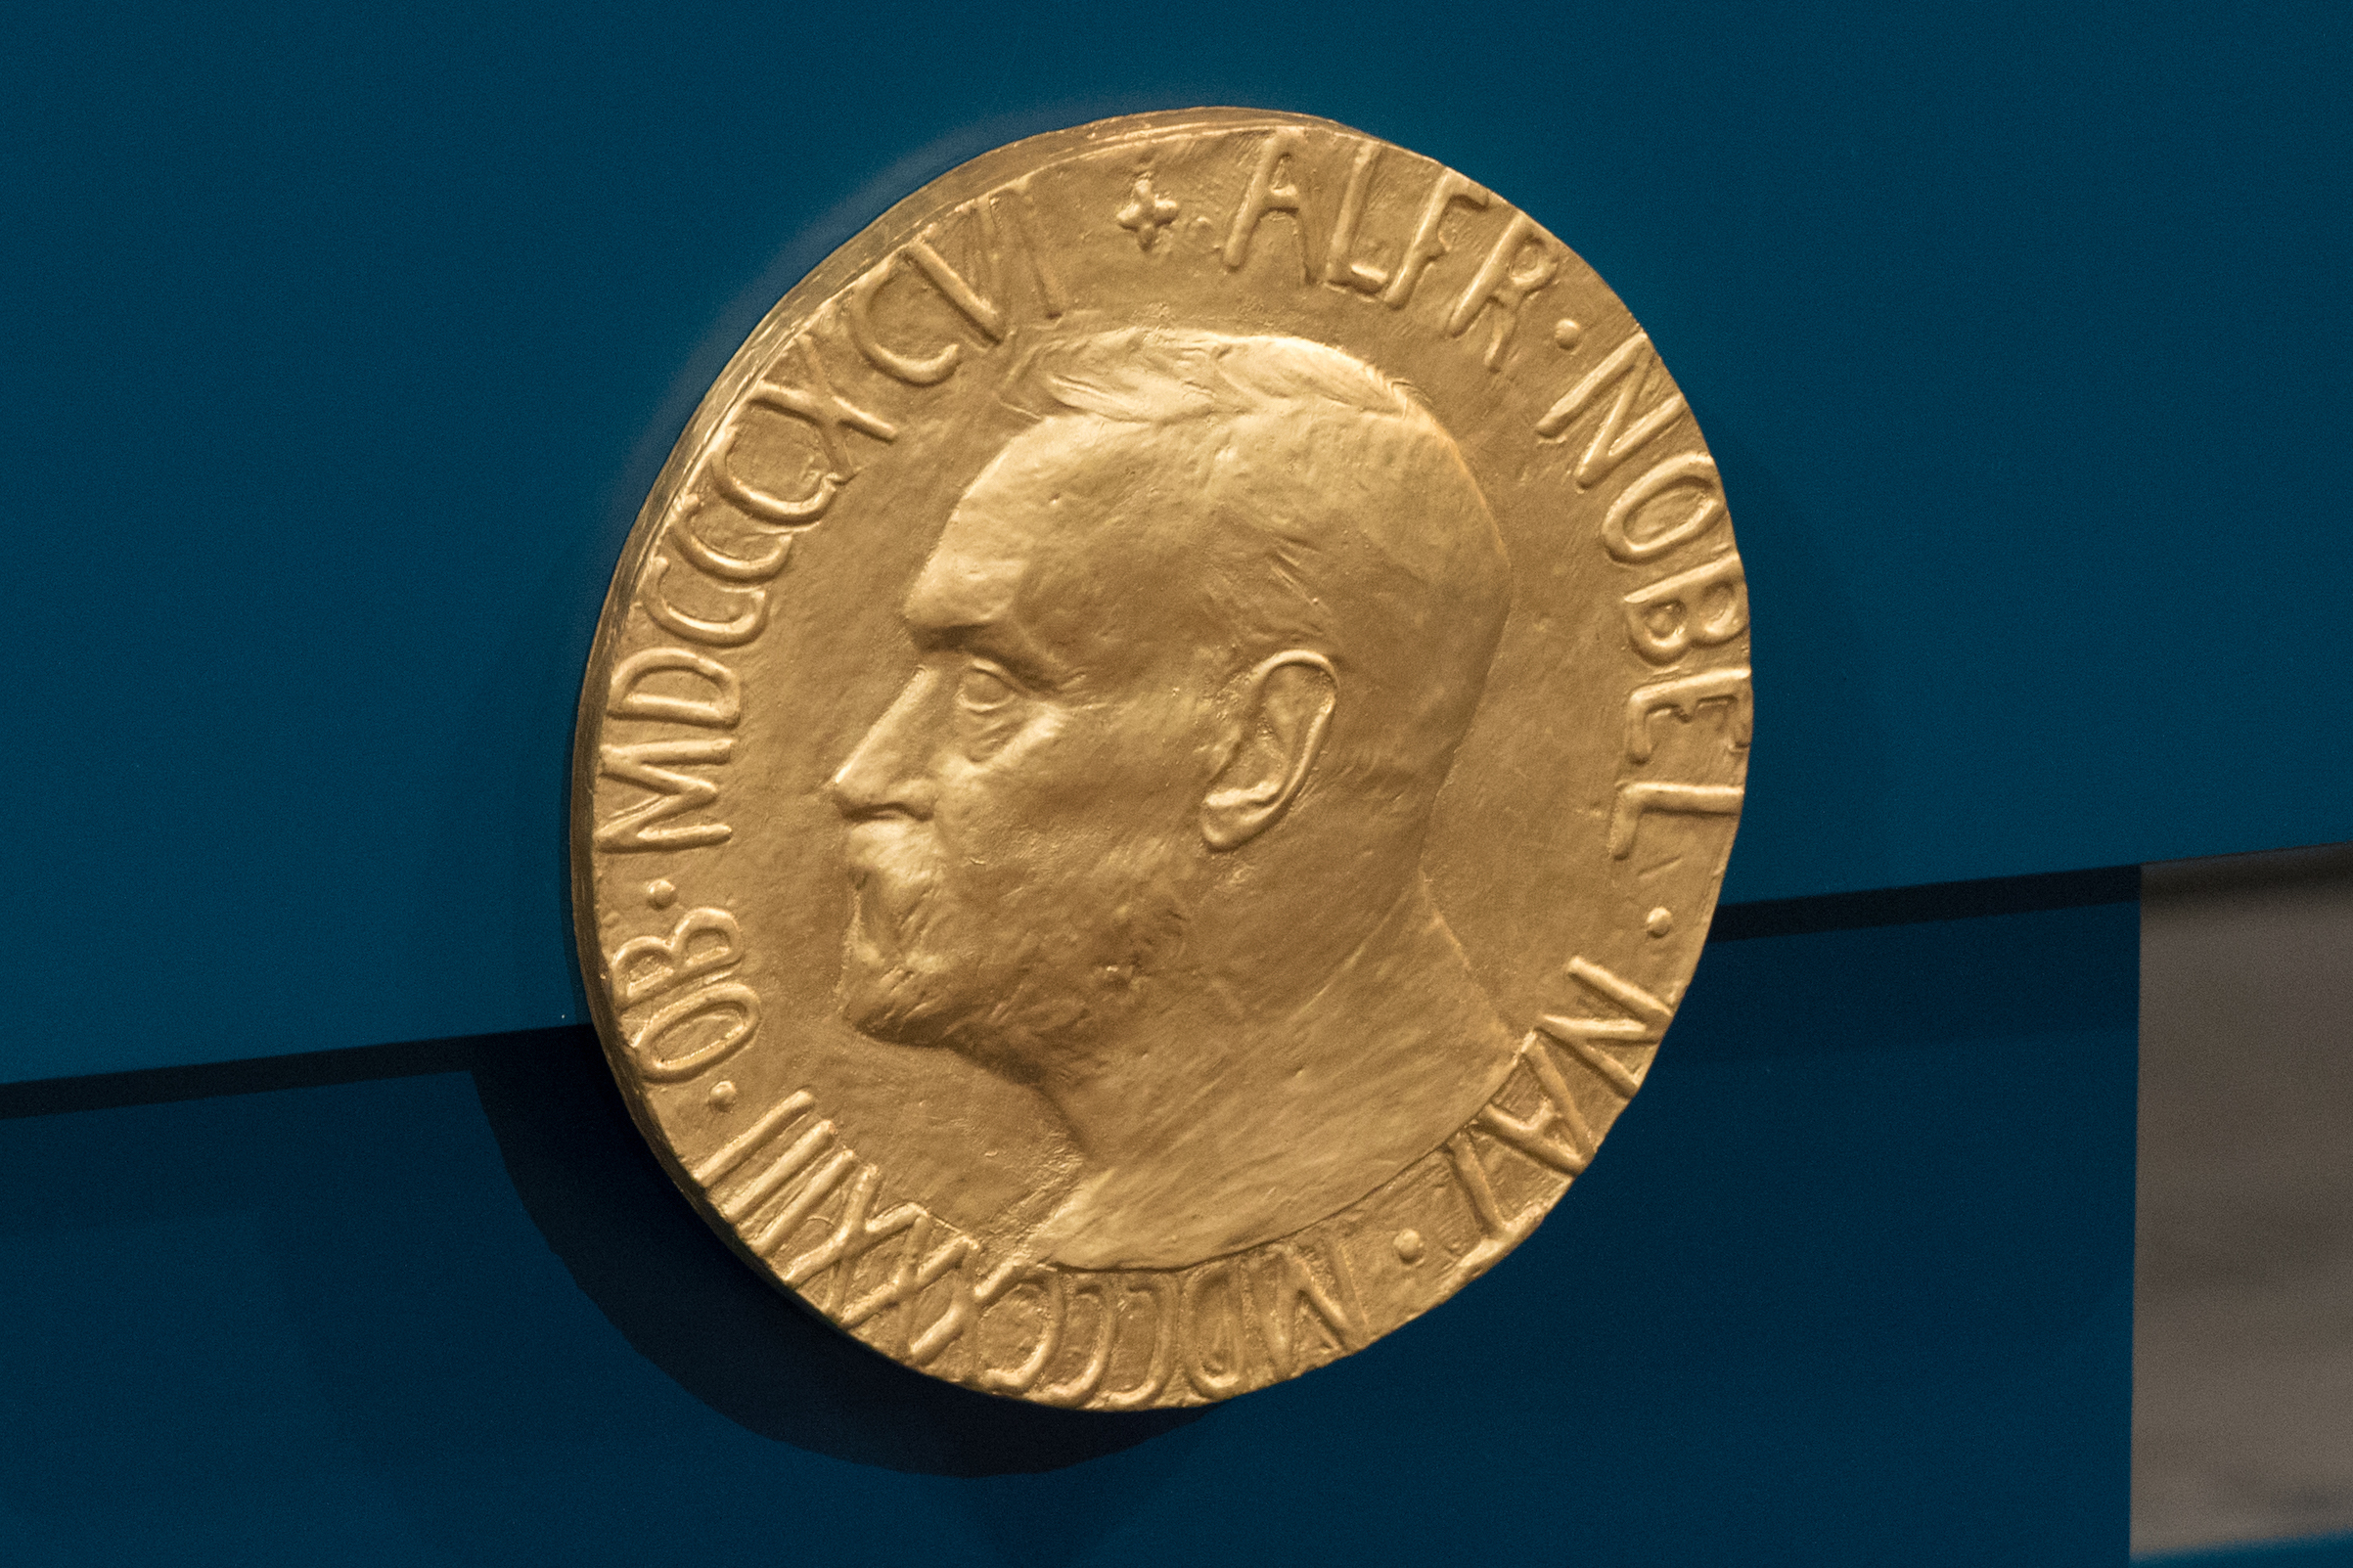 A plaque depicting Alfred Nobel adorns the wall during the Nobel Peace Prize ceremony at Oslo City Town Hall on Dec. 10, 2015 in Oslo.